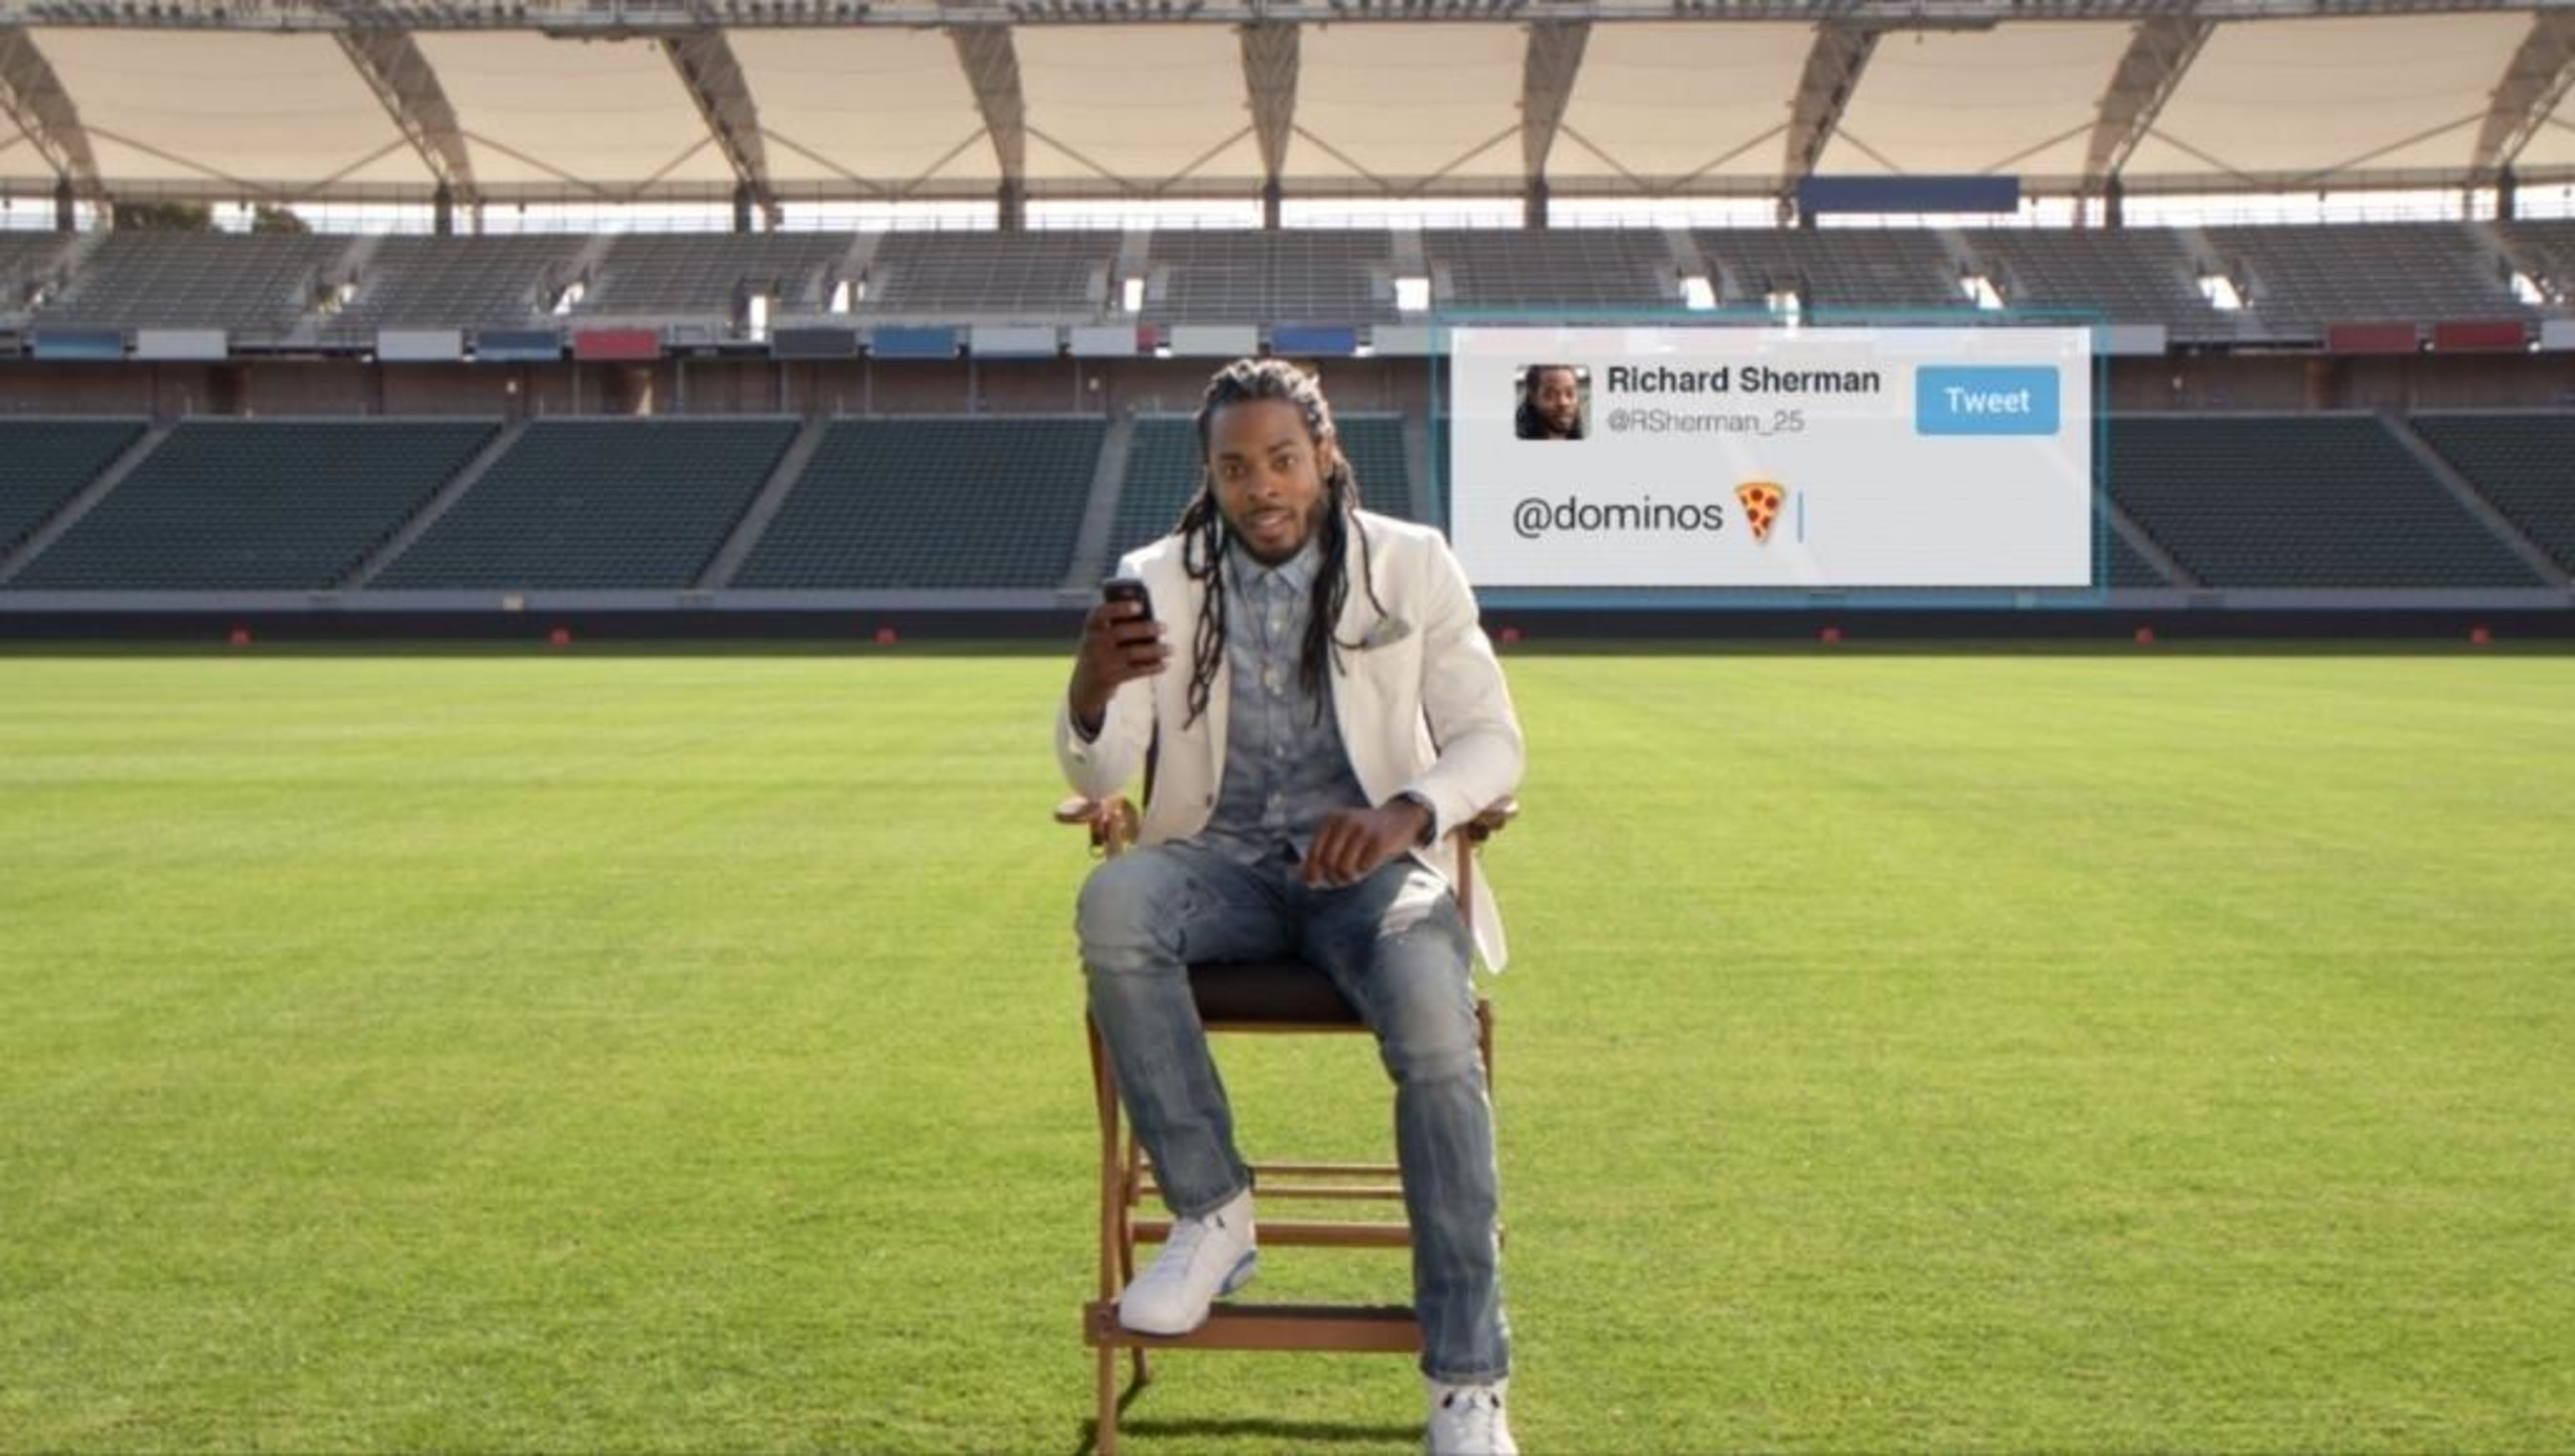 Domino's newest TV campaign, which begins today, features a number of celebrities and their favorite ways to order from Domino's, using AnyWare technology. NFL football player Richard Sherman is featured in the commercial, which showcases his love for ordering Domino's via Twitter.